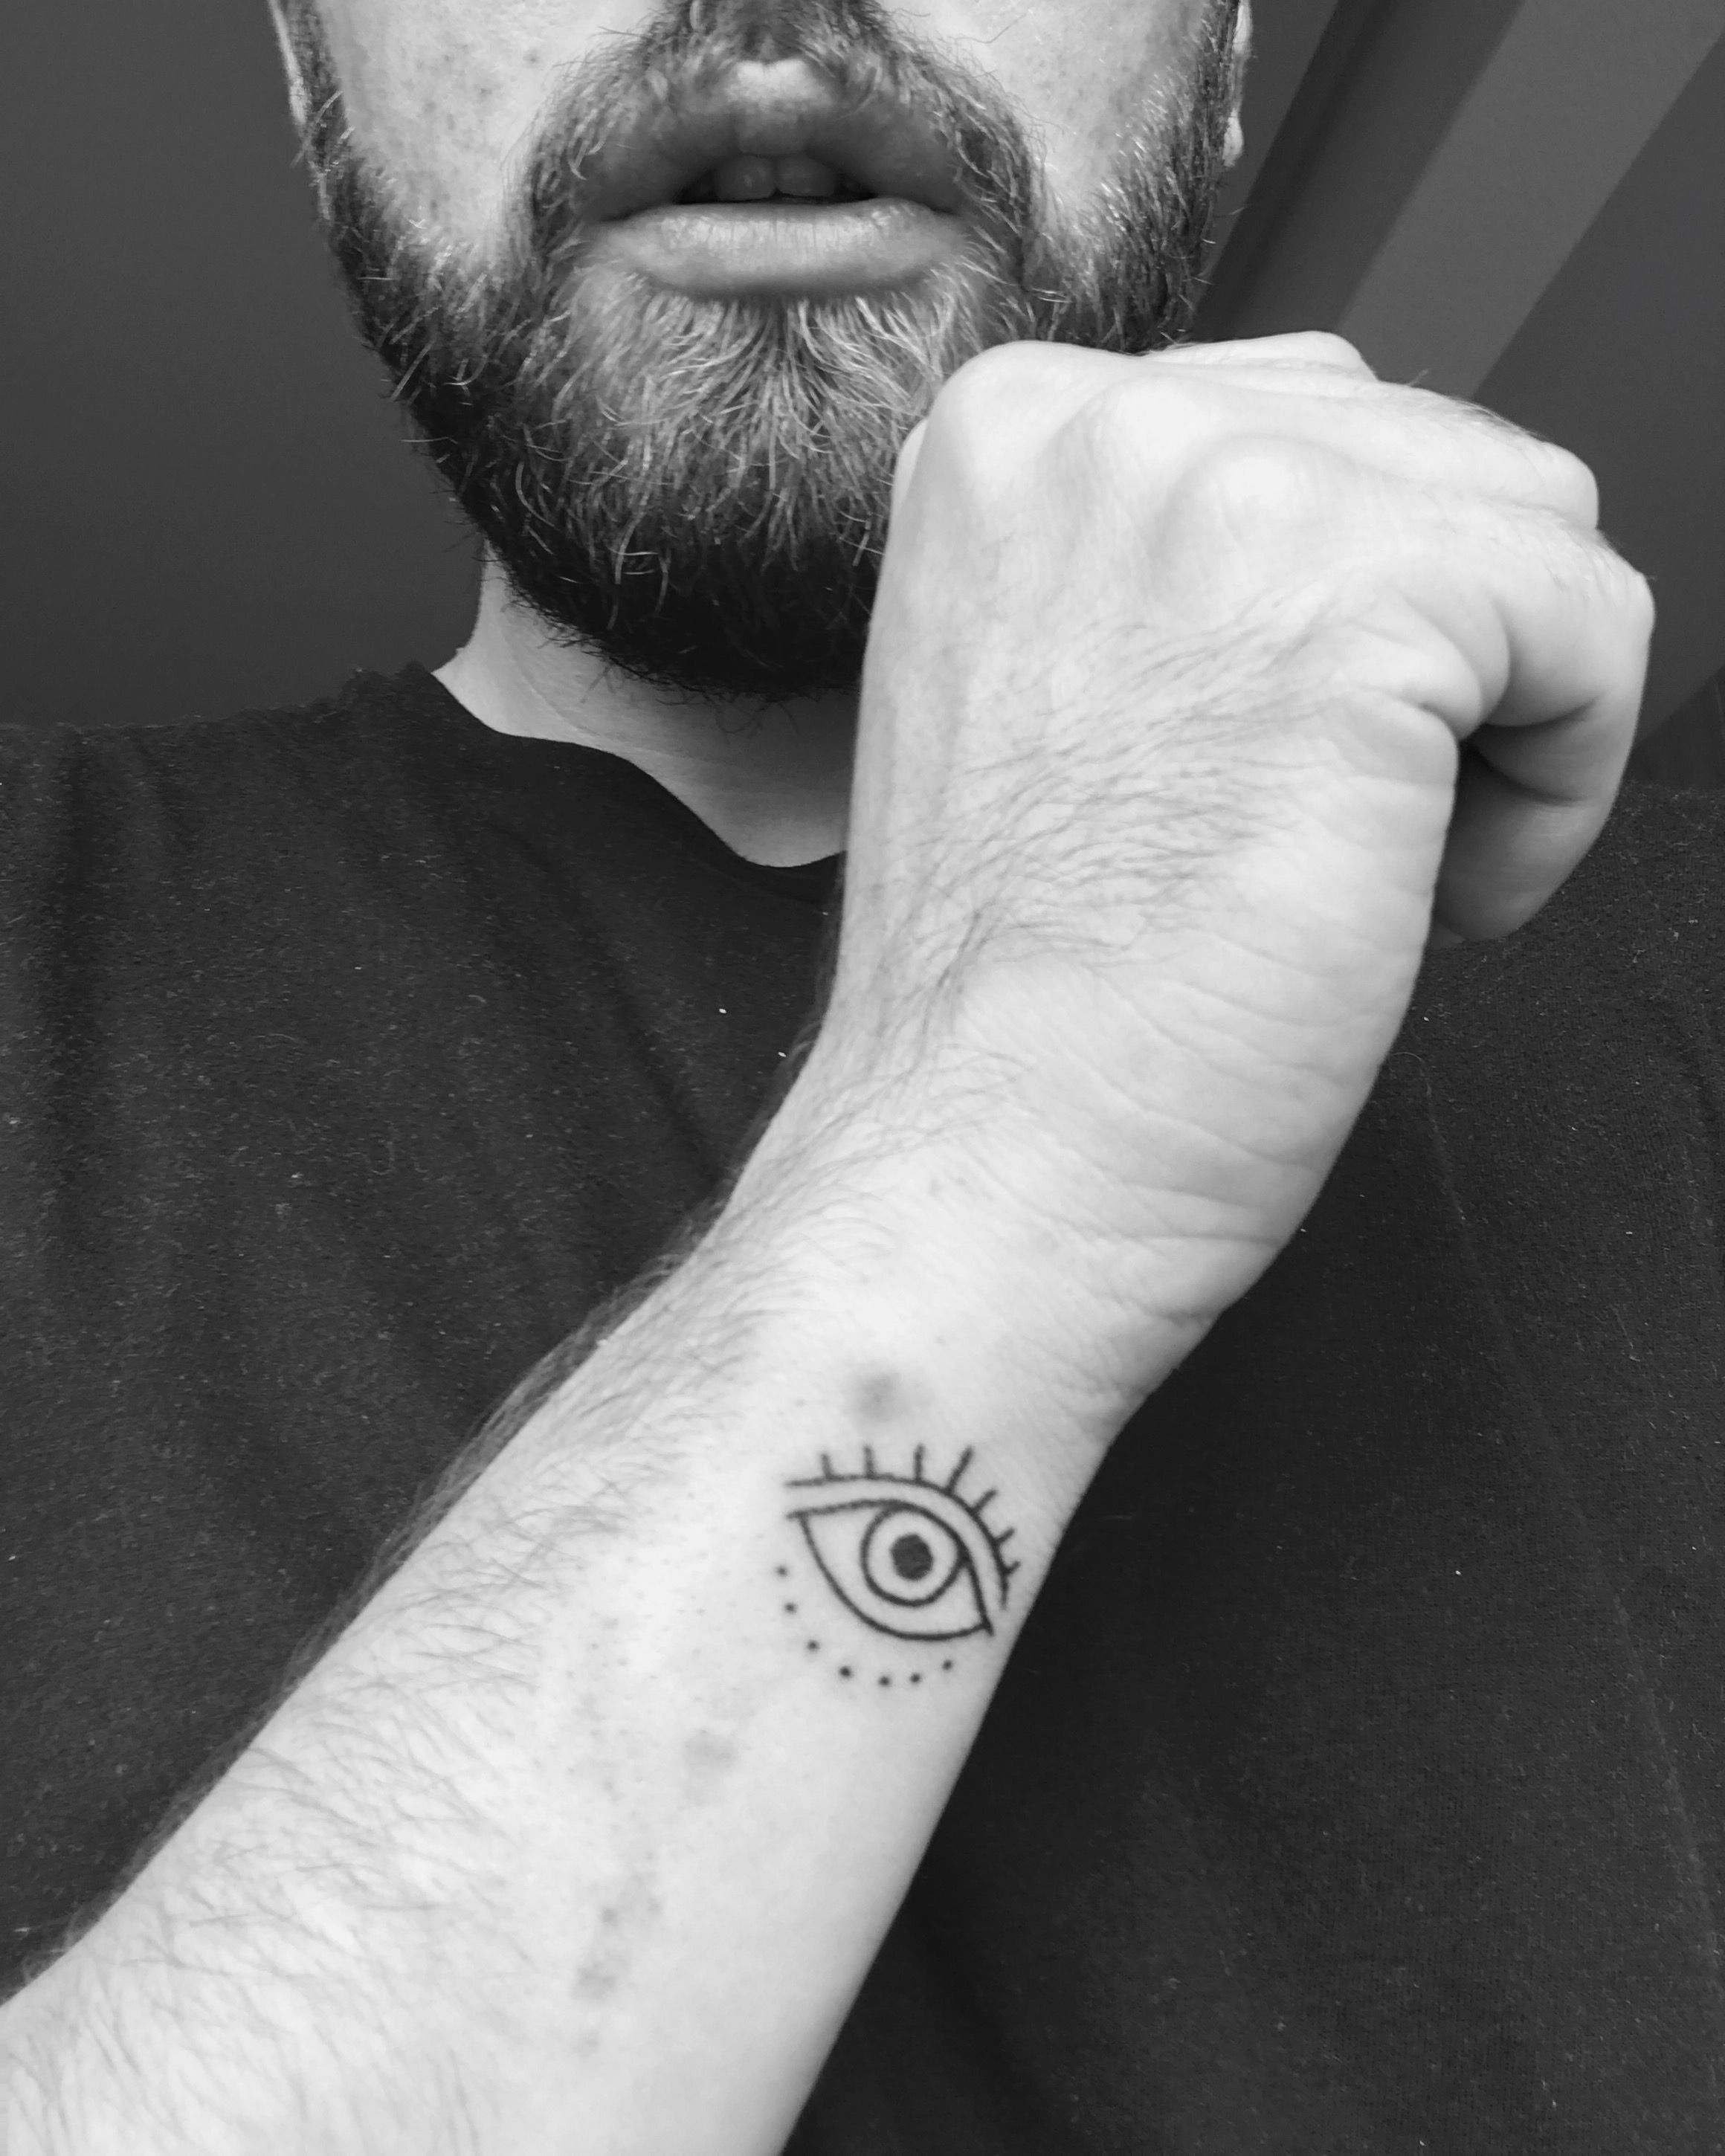 e9237f8e2 Just got this Evil Eye Tattoo | • i n k • | Eye tattoo meaning ...